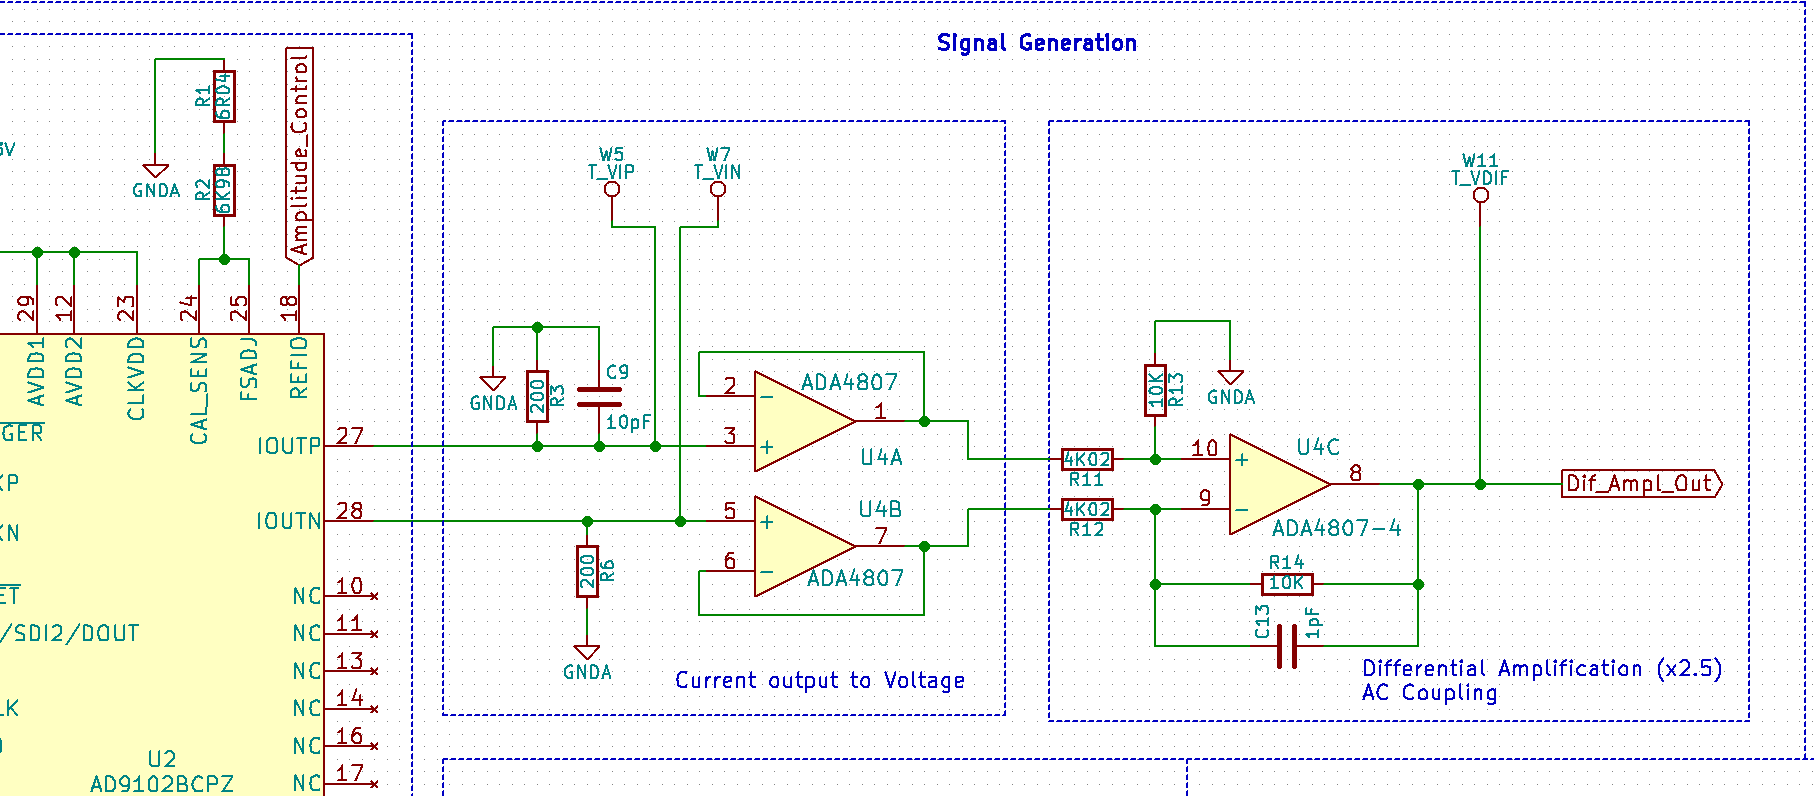 Ardugen High And Low Frequency Noise Generator Schematic For The Time Being Please Ignore Main Ic Which Is An Ad9102 Waveform As It Heart Of Design Requires A Log Its Own